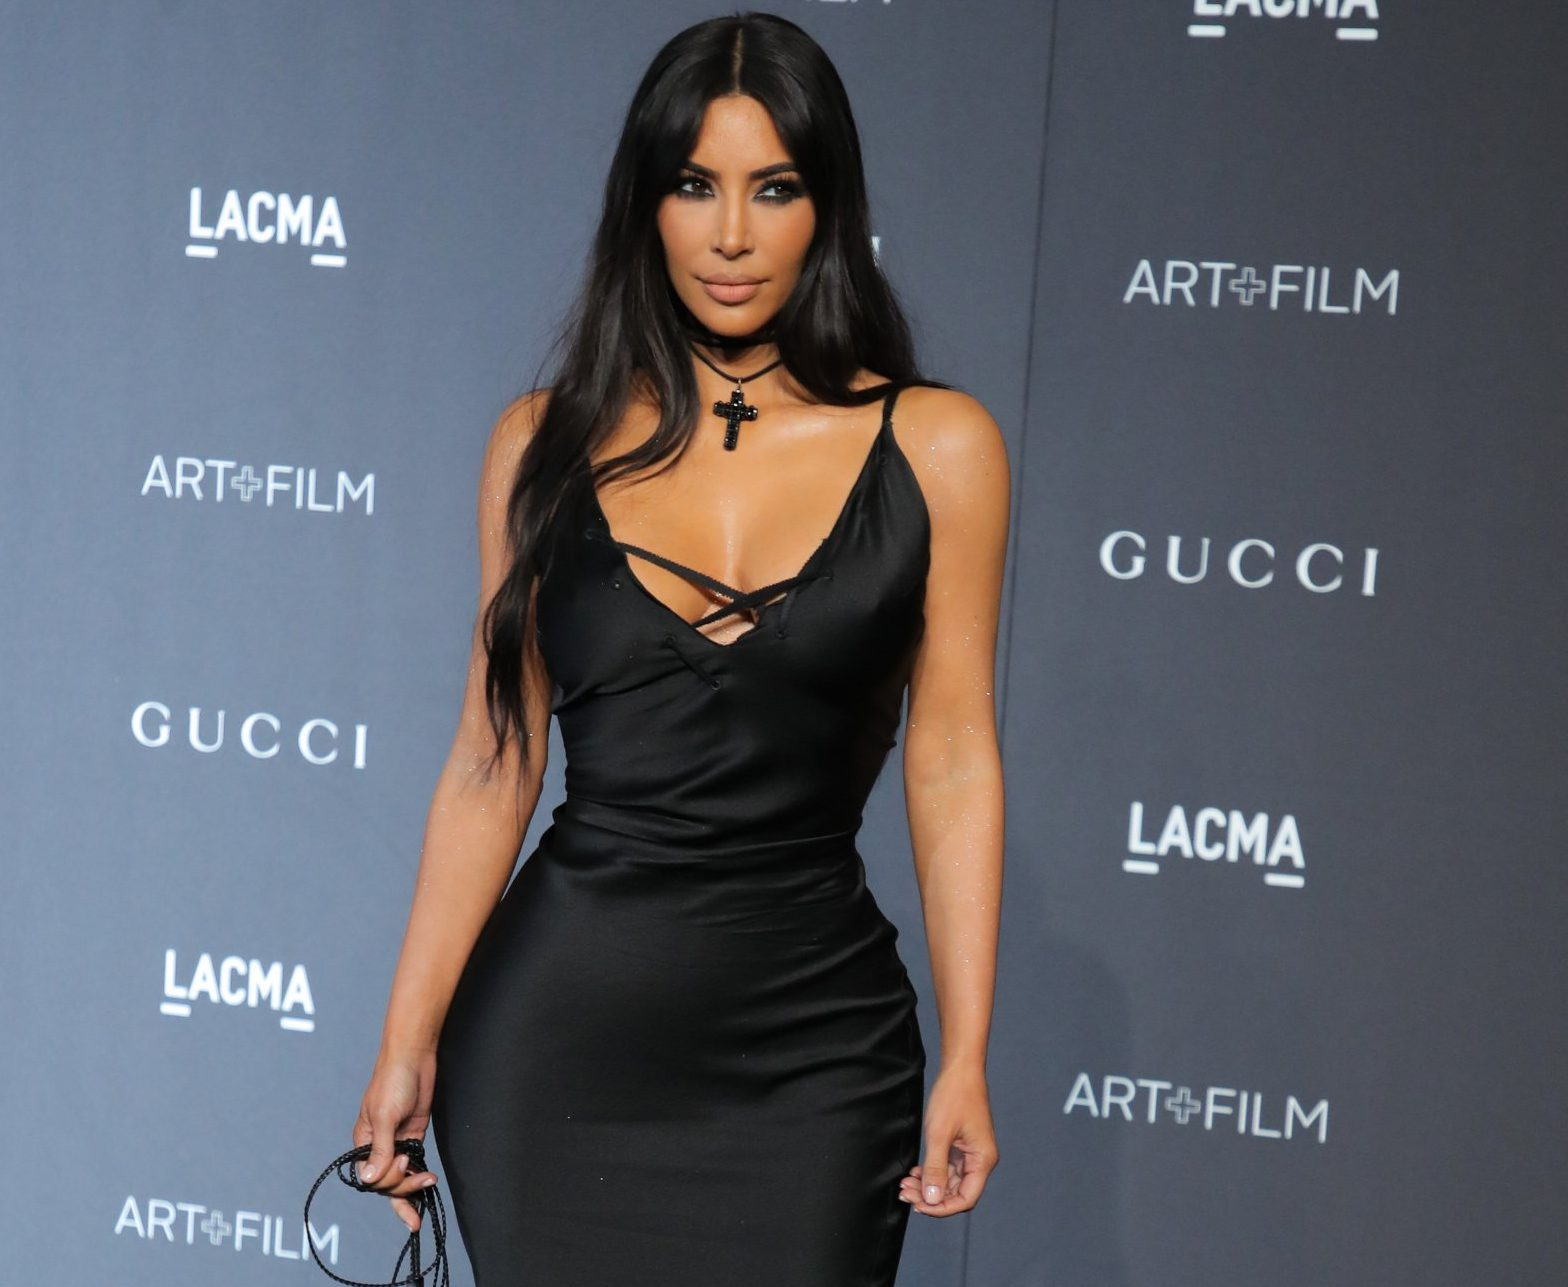 Kim Kardashian: From ecstasy-fuelled weddings and sex tapes to shunning alcohol